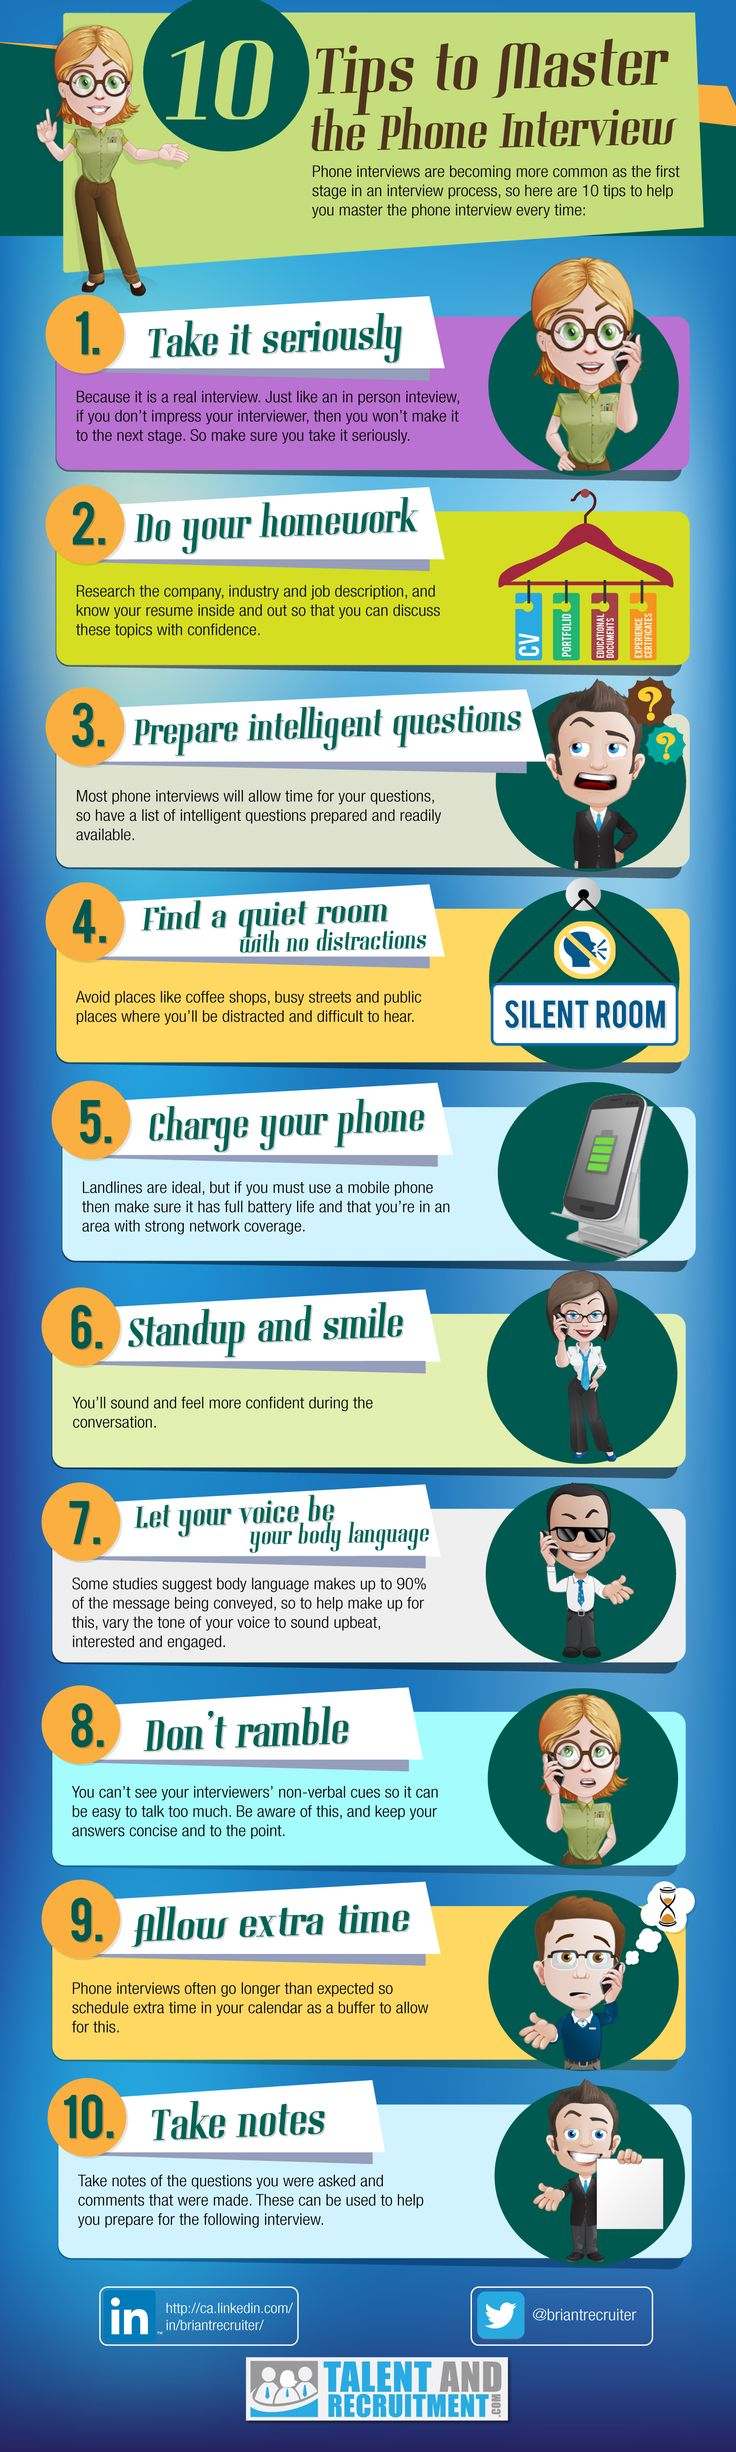 17 best images about job career info personal 10 tips master phone interview